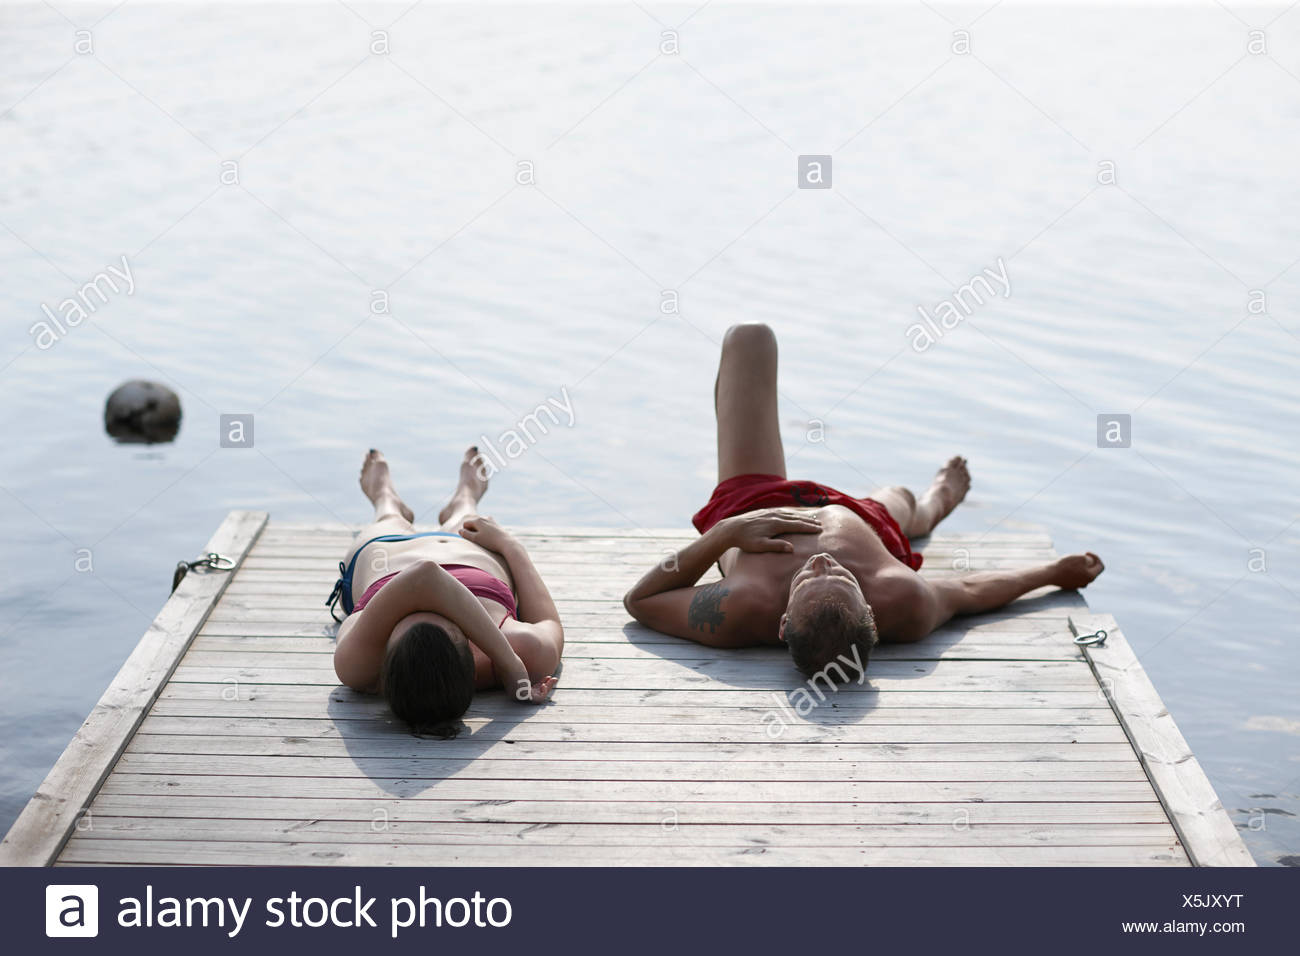 Sweden, Dalarna, Siljan, Man and woman lying on jetty - Stock Image